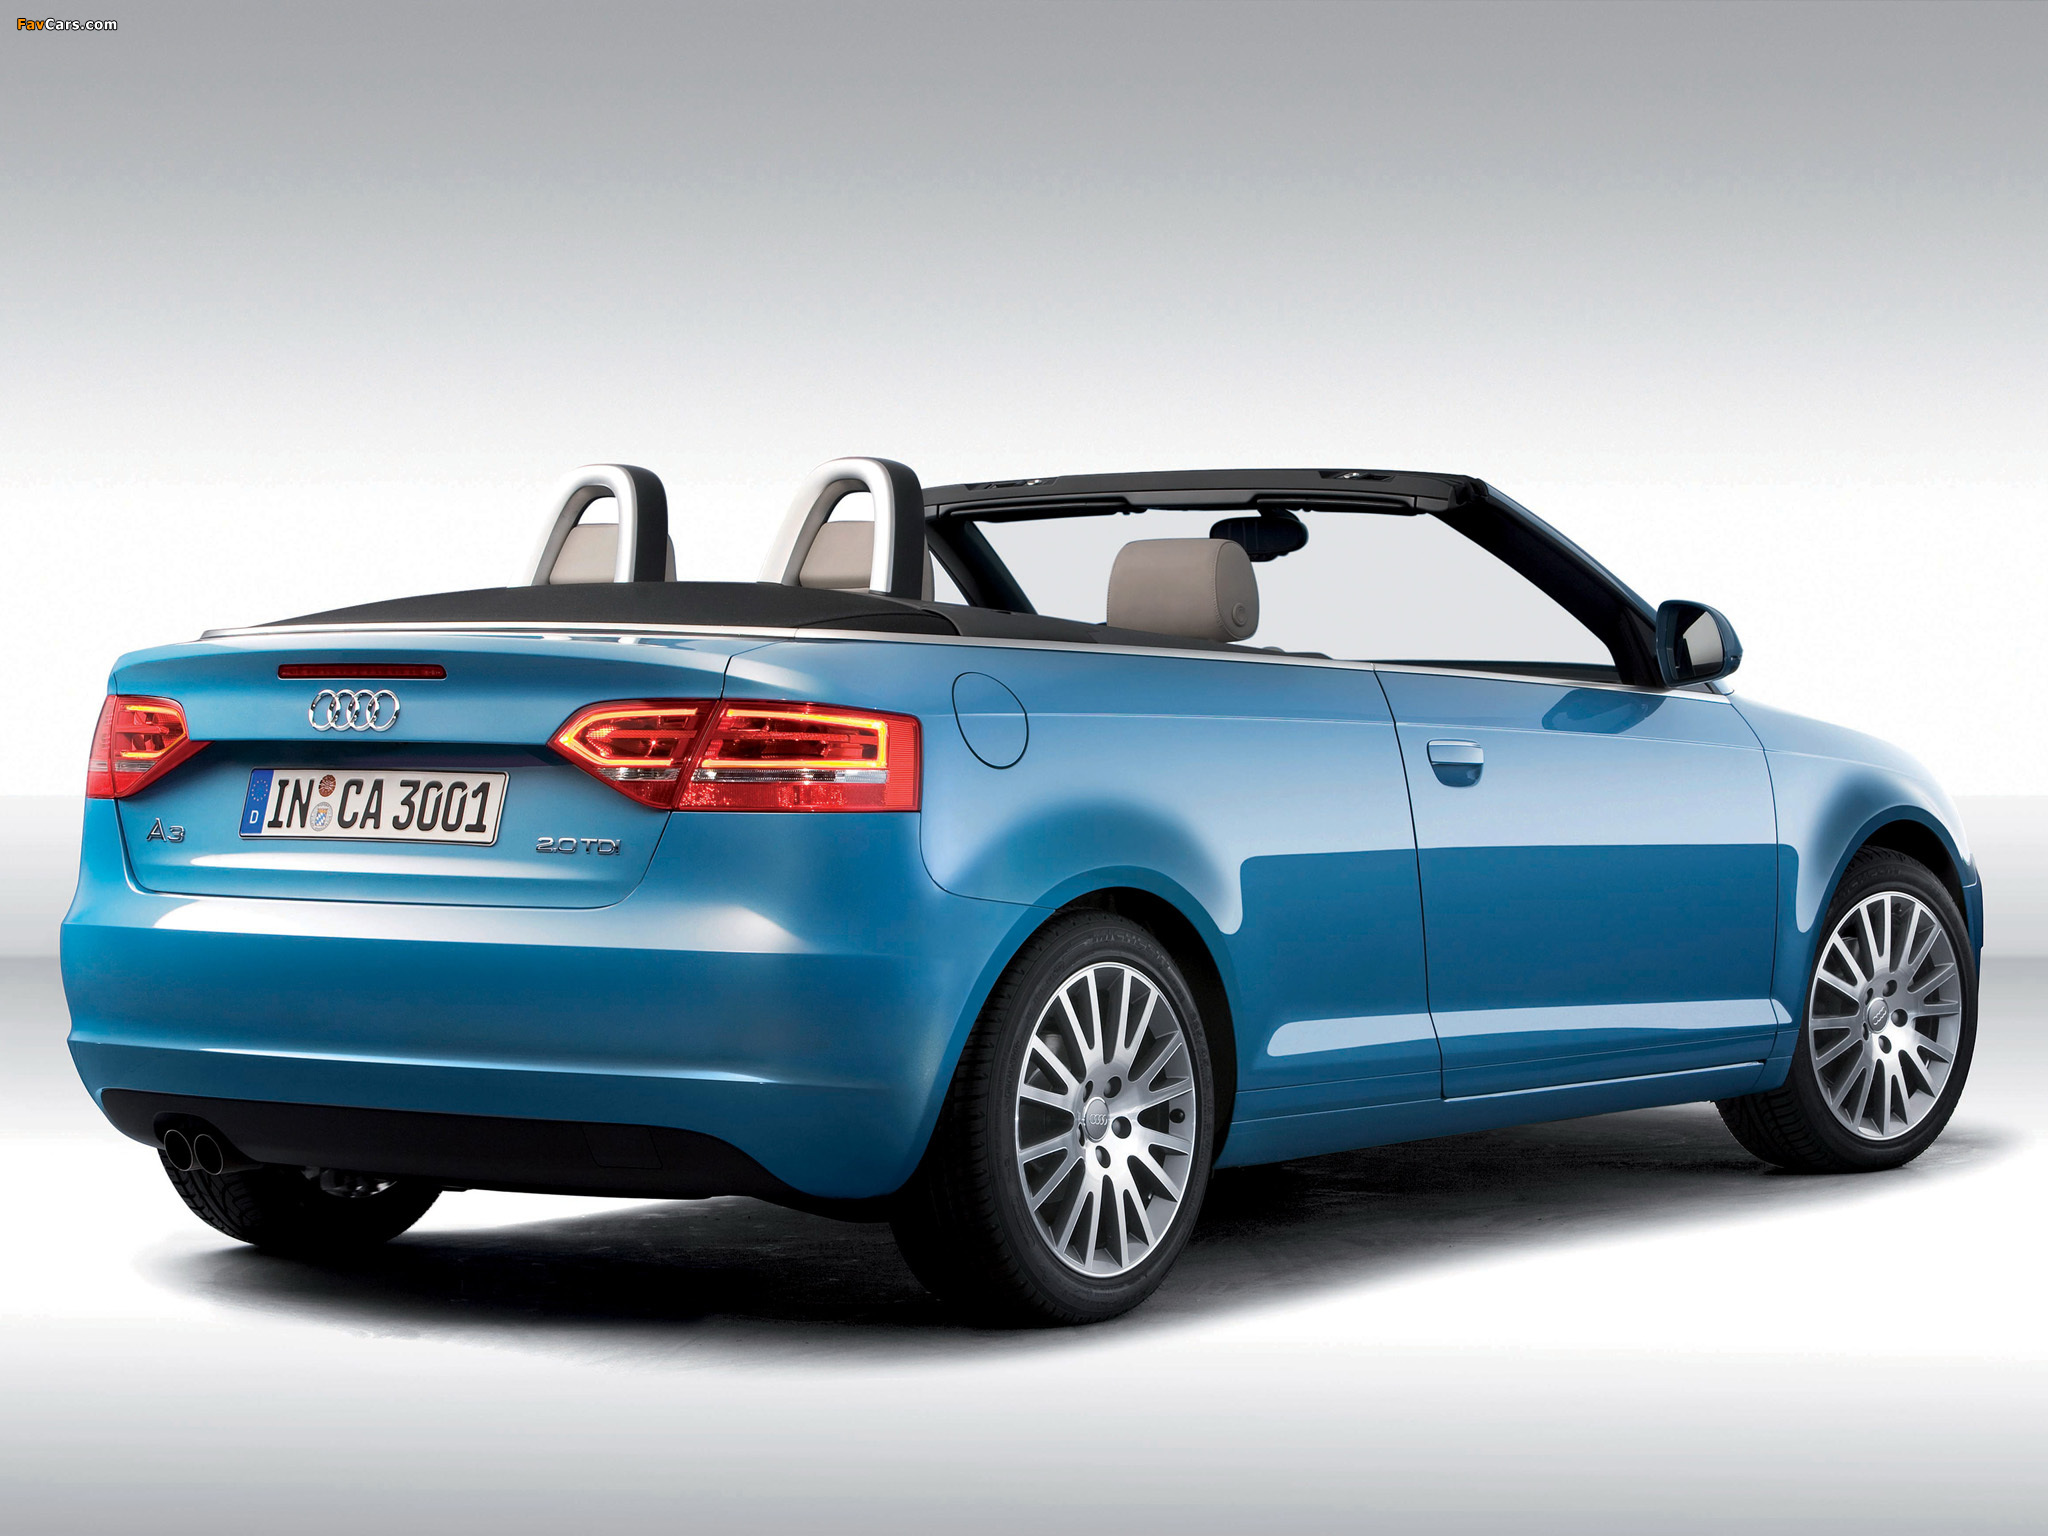 Photos Of Audi A3 2 0 Tdi Cabriolet 8pa 2008 2010